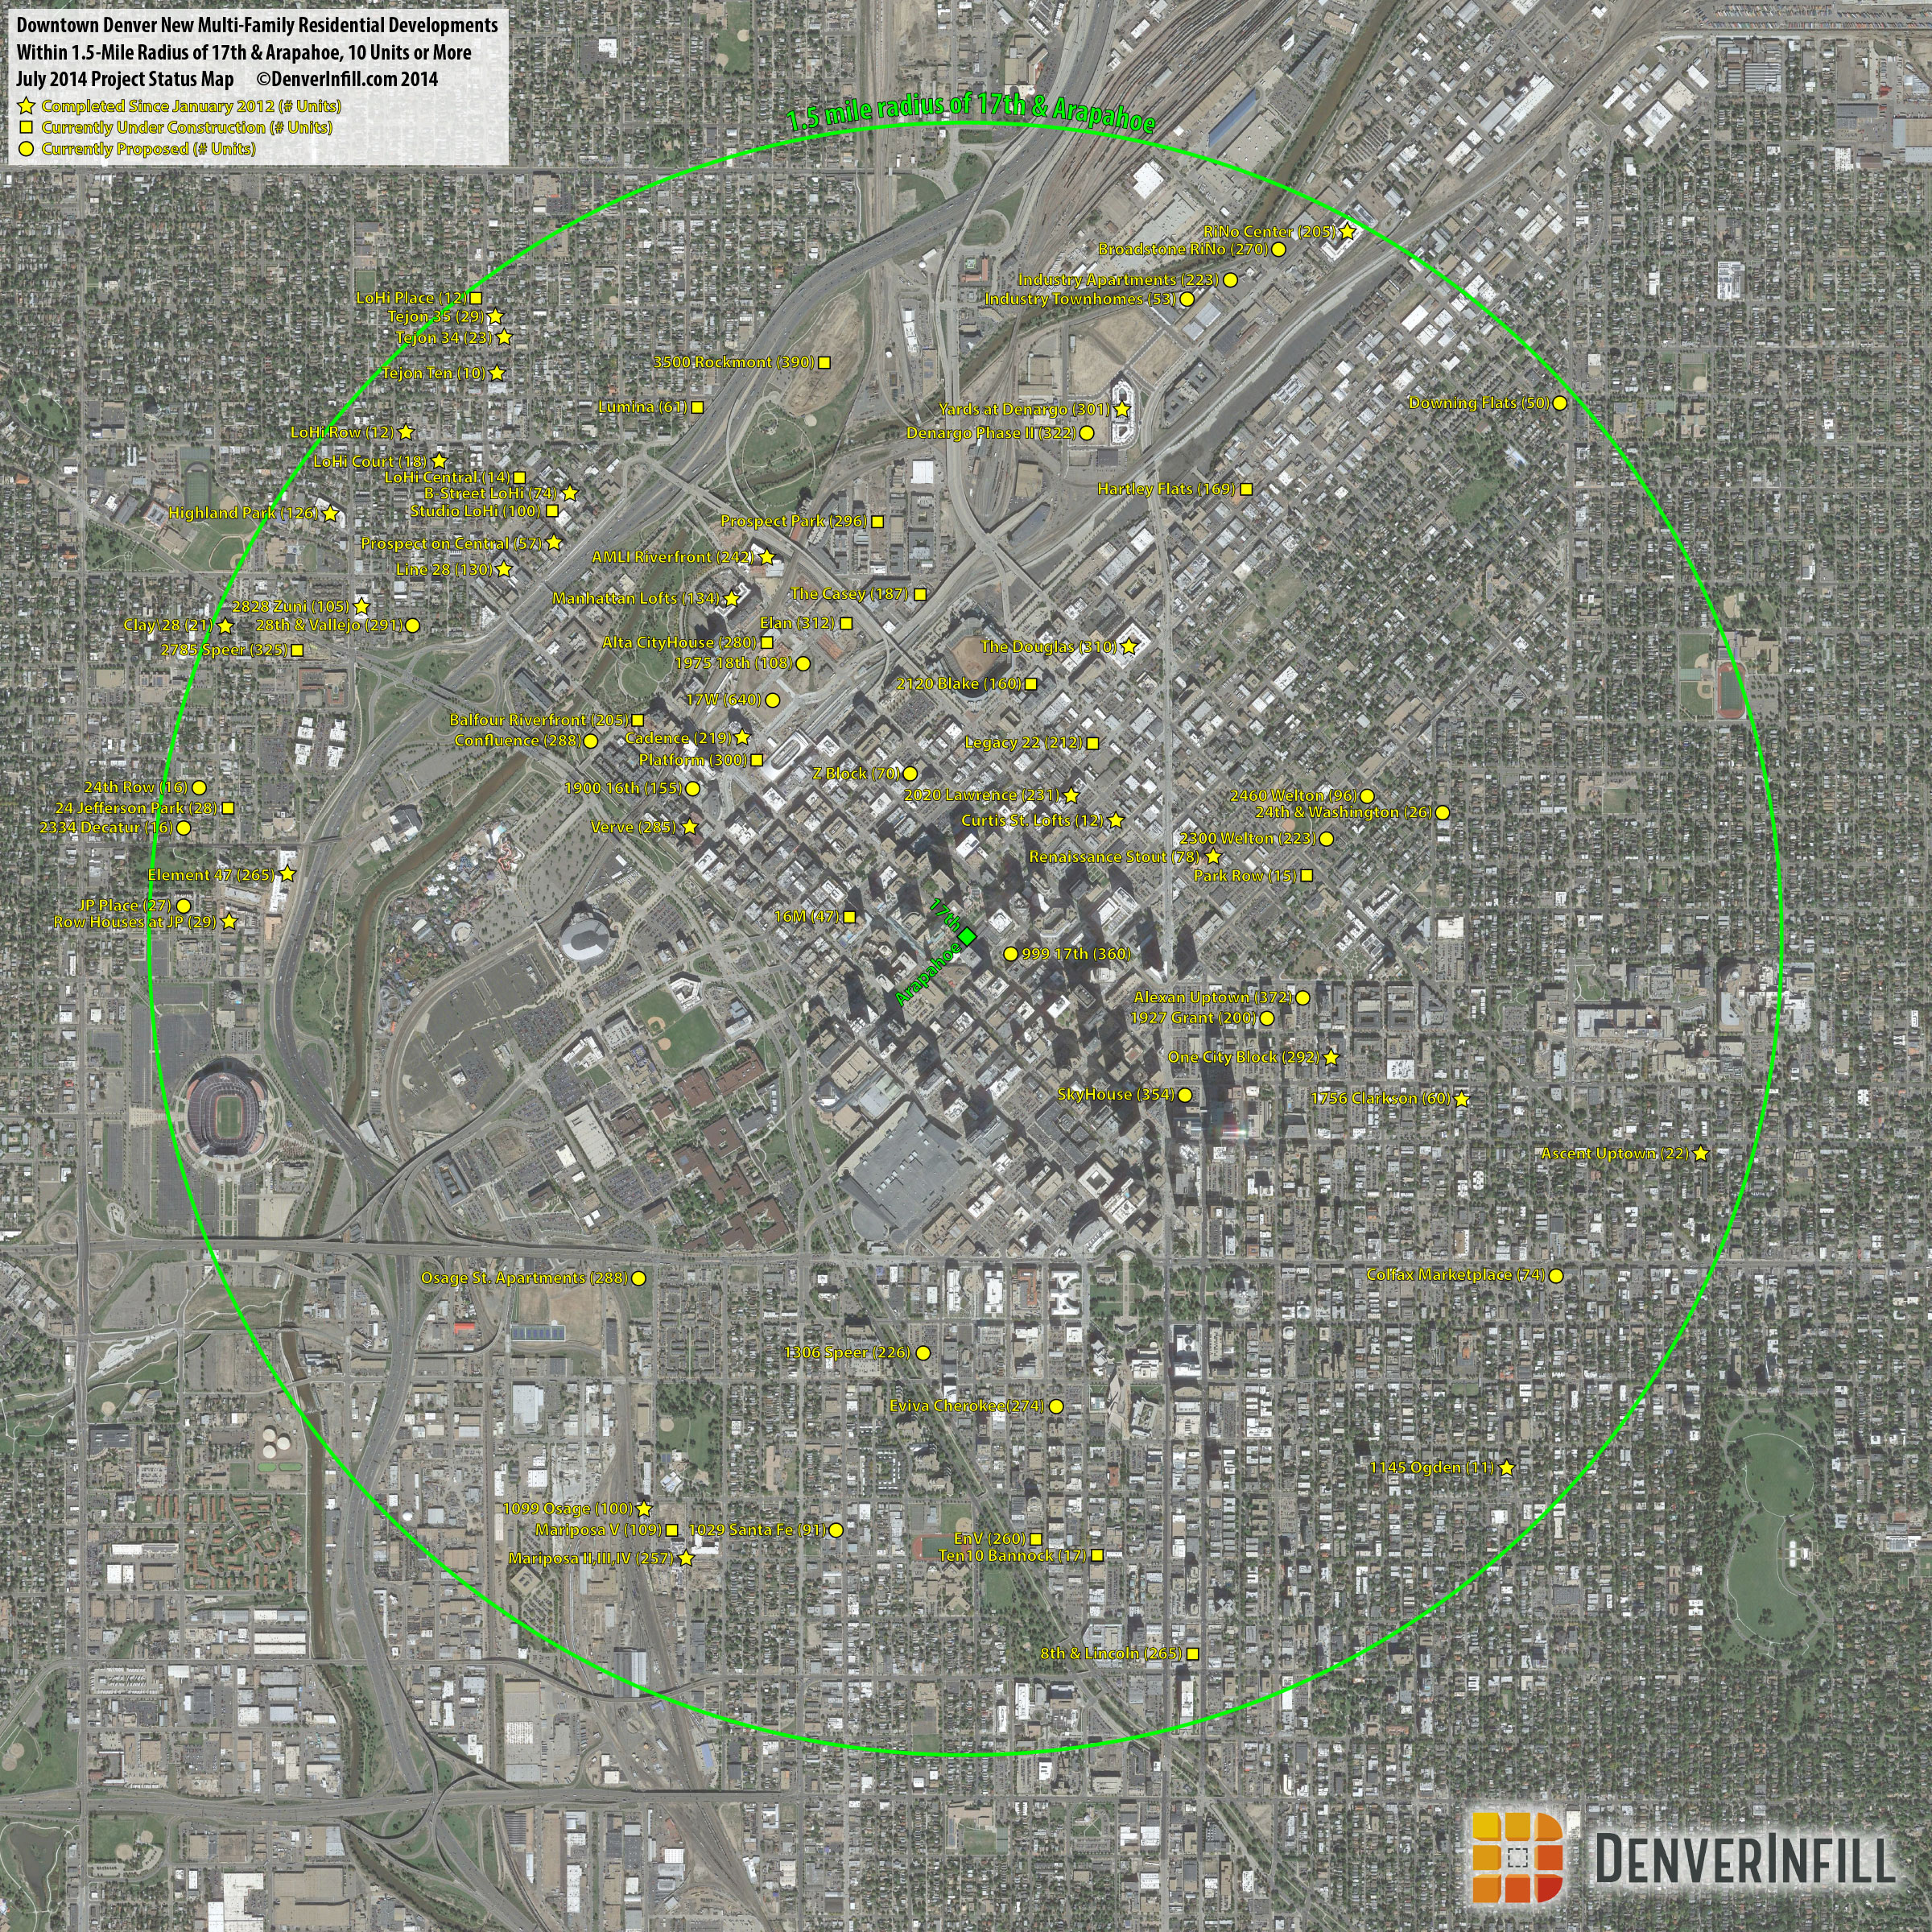 2014-07-21_downtown-denver-new-multifamily-developments-July-2014-map